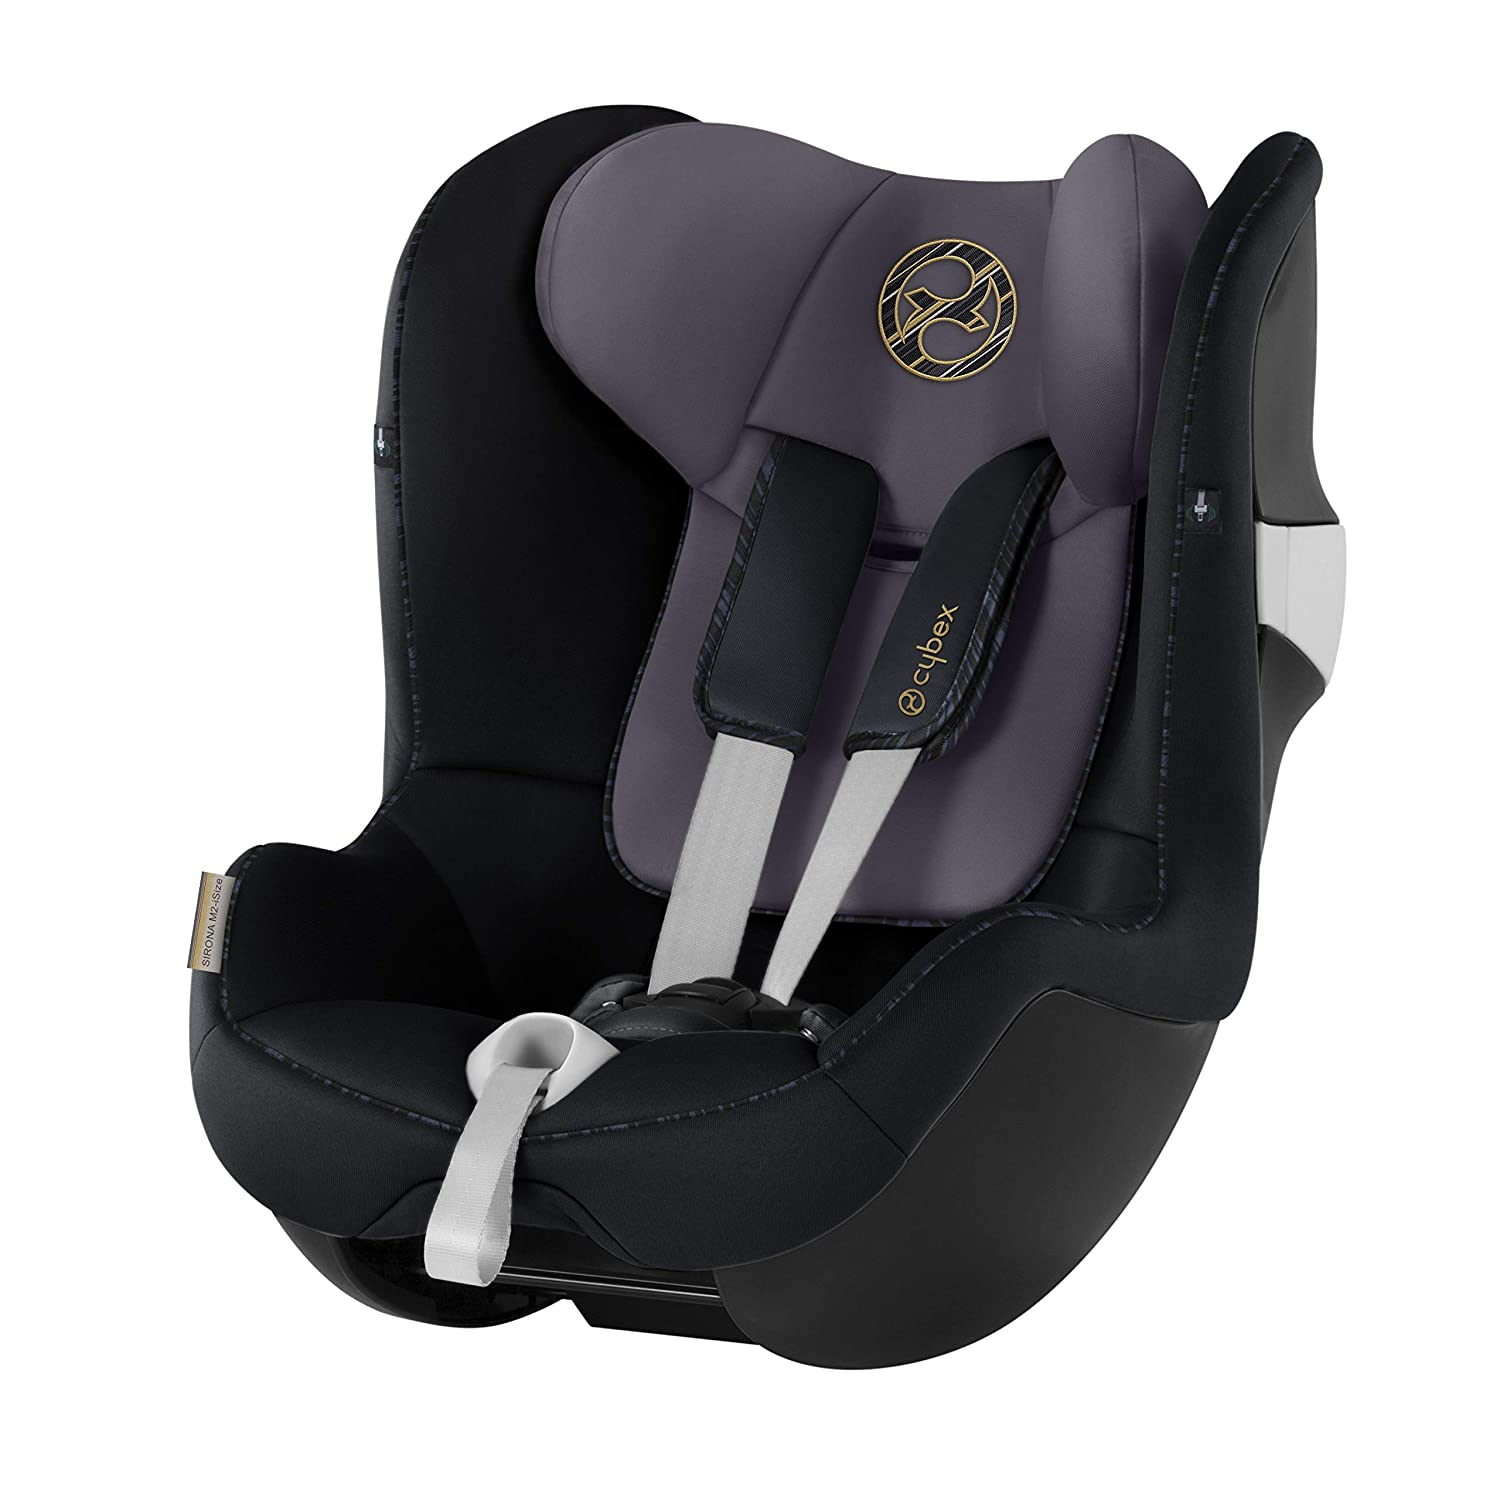 Premium Black CYBEX Gold Sirona S i-Size Car Seat with 360/° Swivel Mechanism and ISOFIX 105 cm Height From Birth to approx 4 Years Up to Max